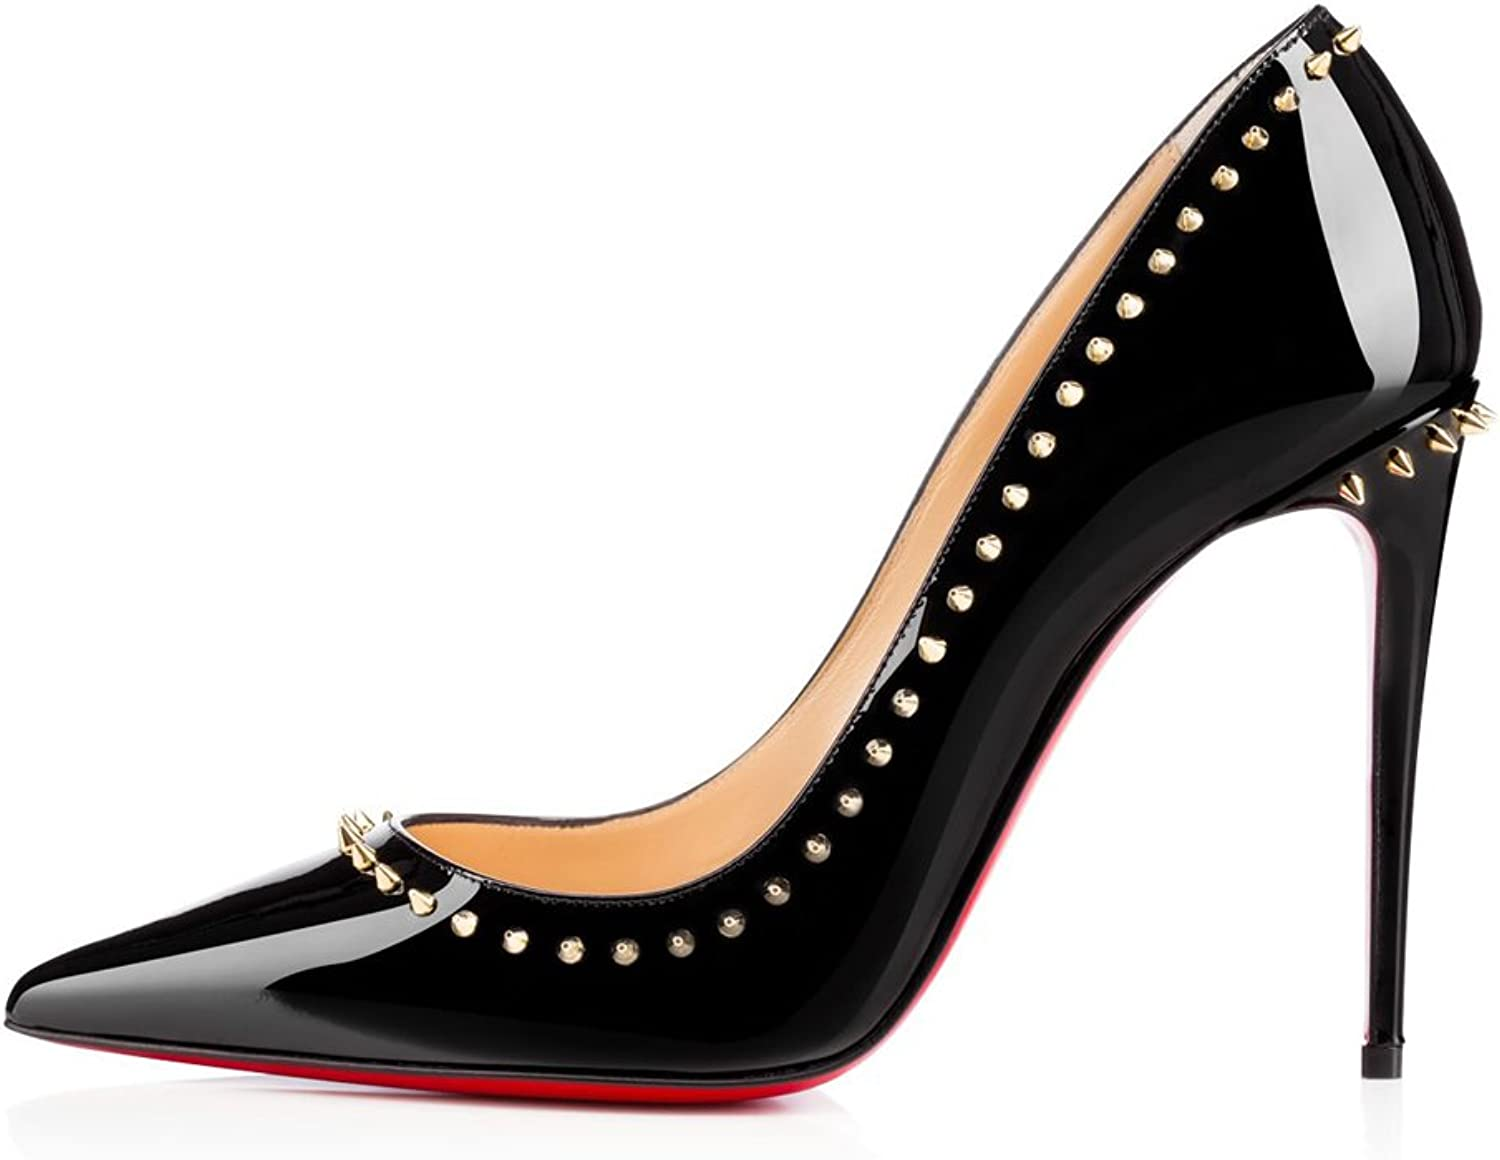 Joogo Women's Fashion Pointed Toe Red Sole High Slim Heel Pumps with Rivet Decoration